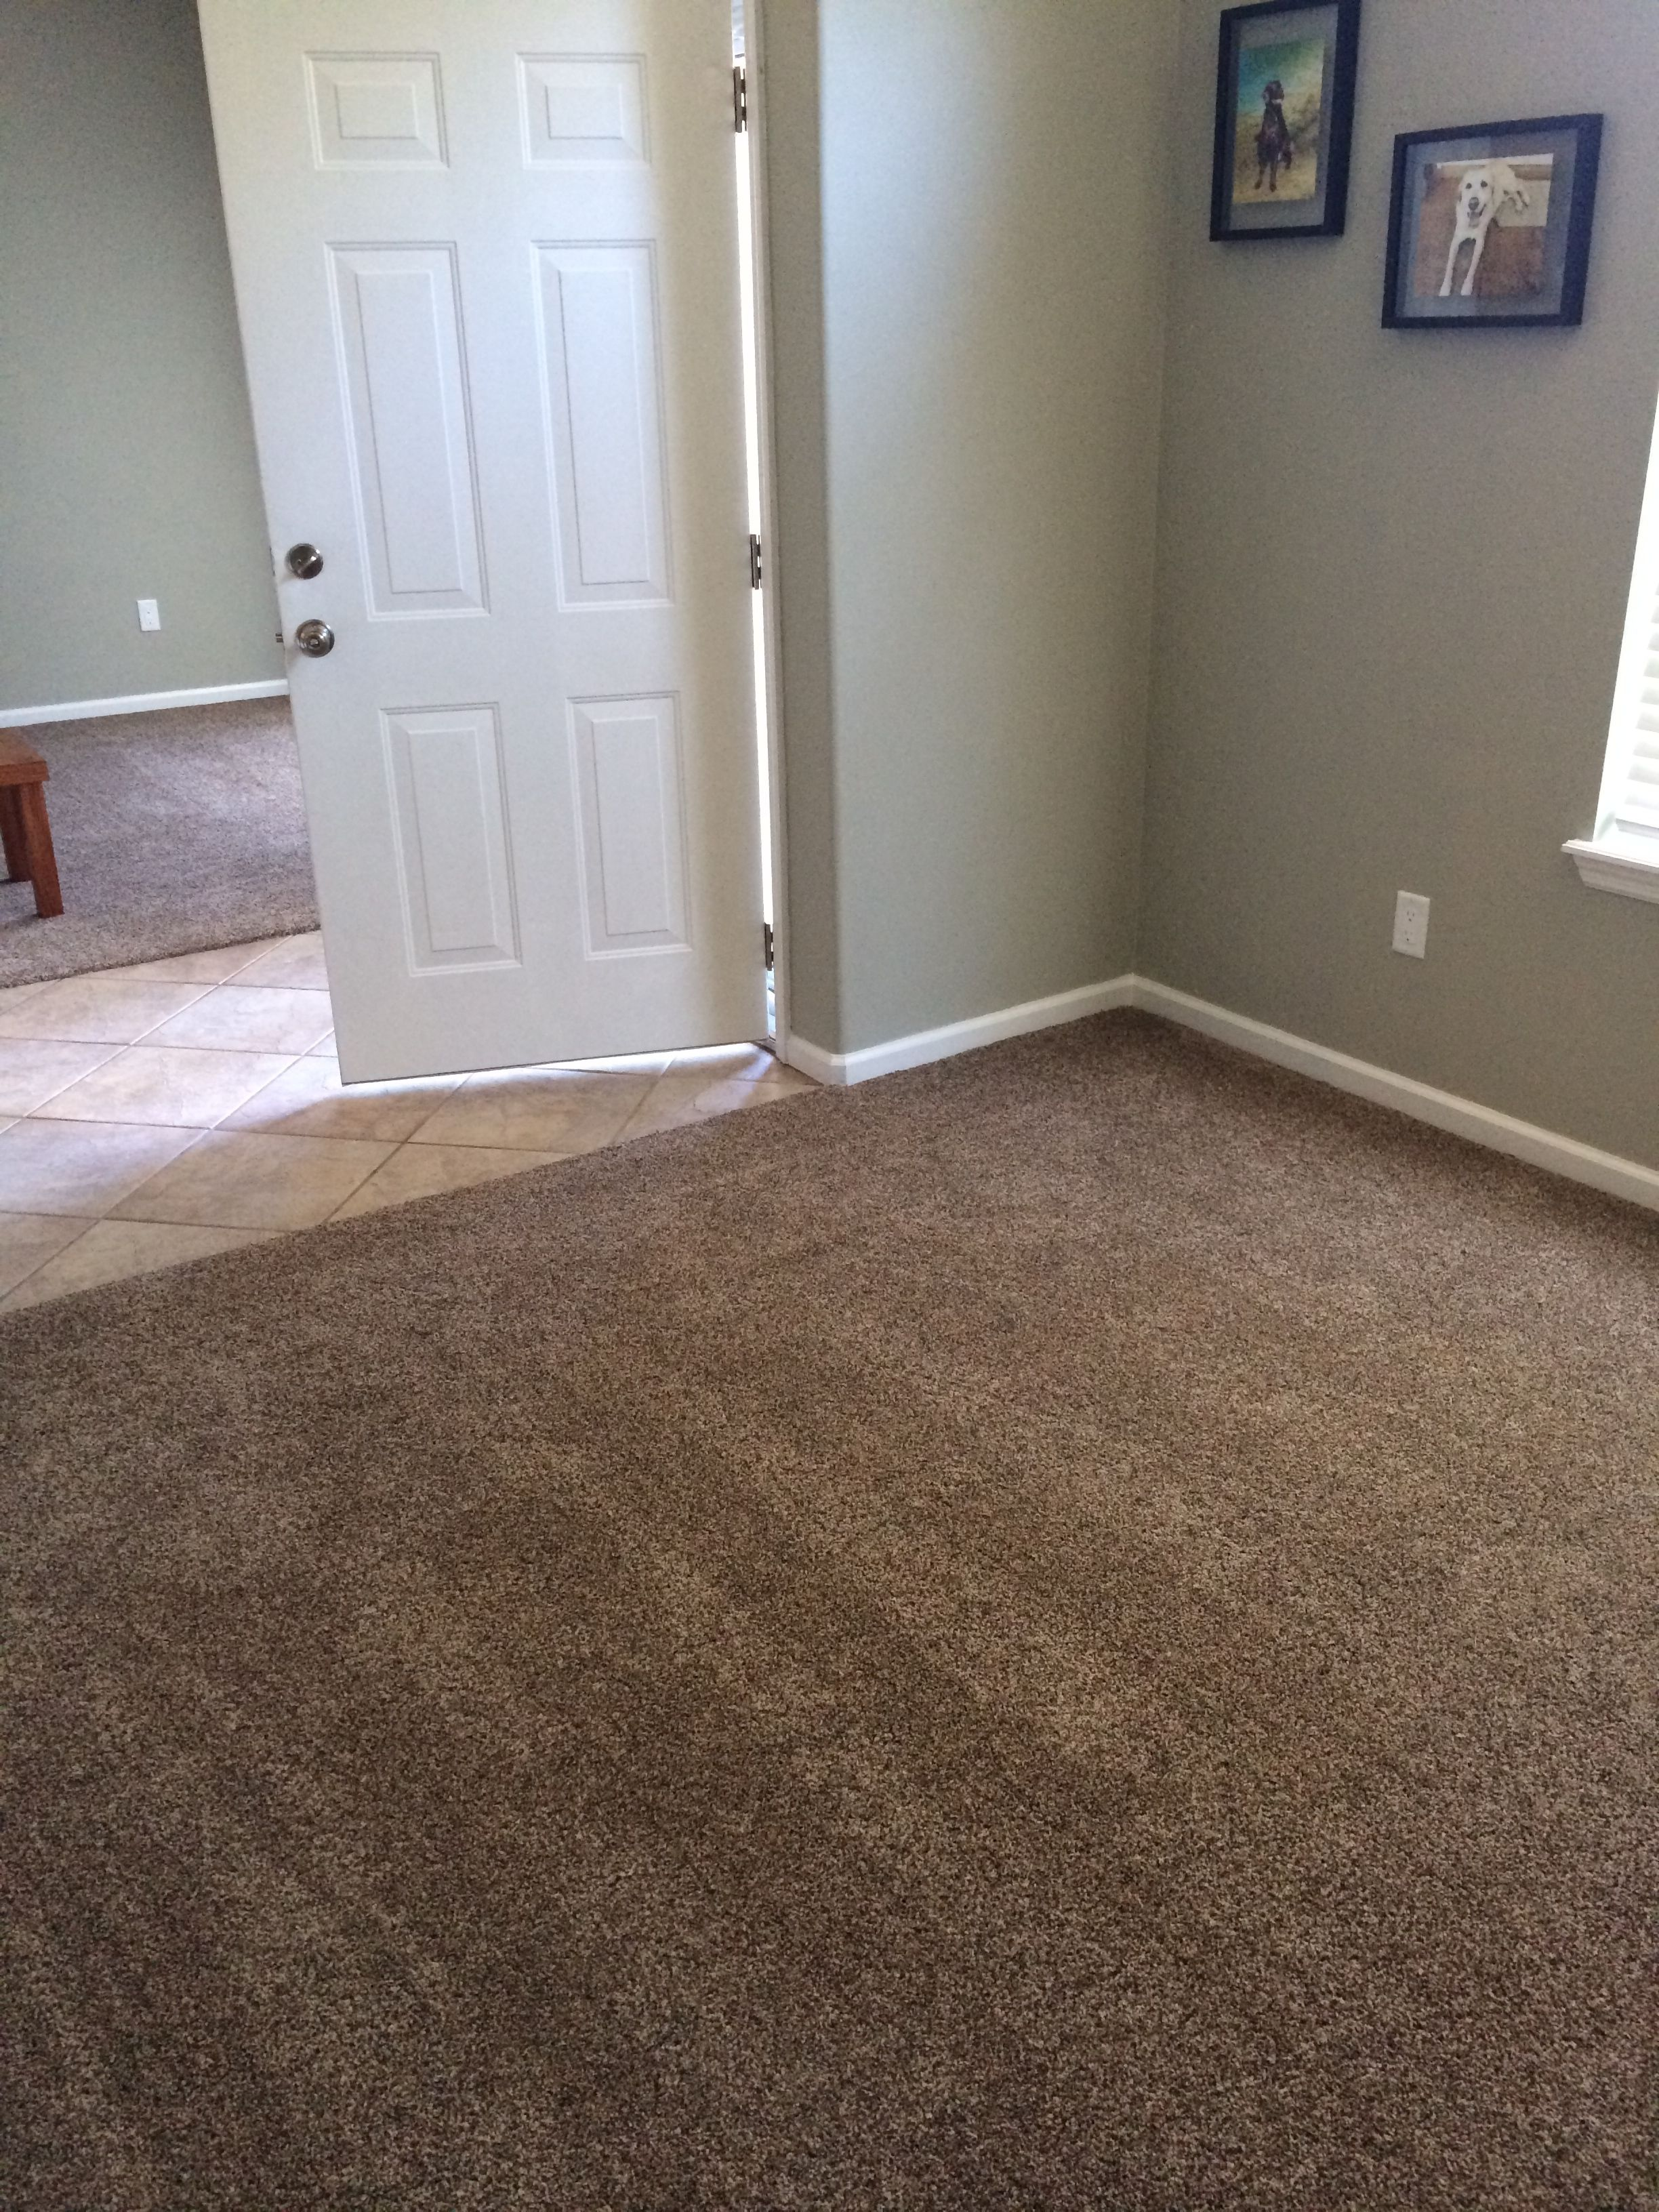 Best Carpet Color For Brown Sofa Deep Seat Dimensions Lowes The Mace Place Floors Pinterest Colors